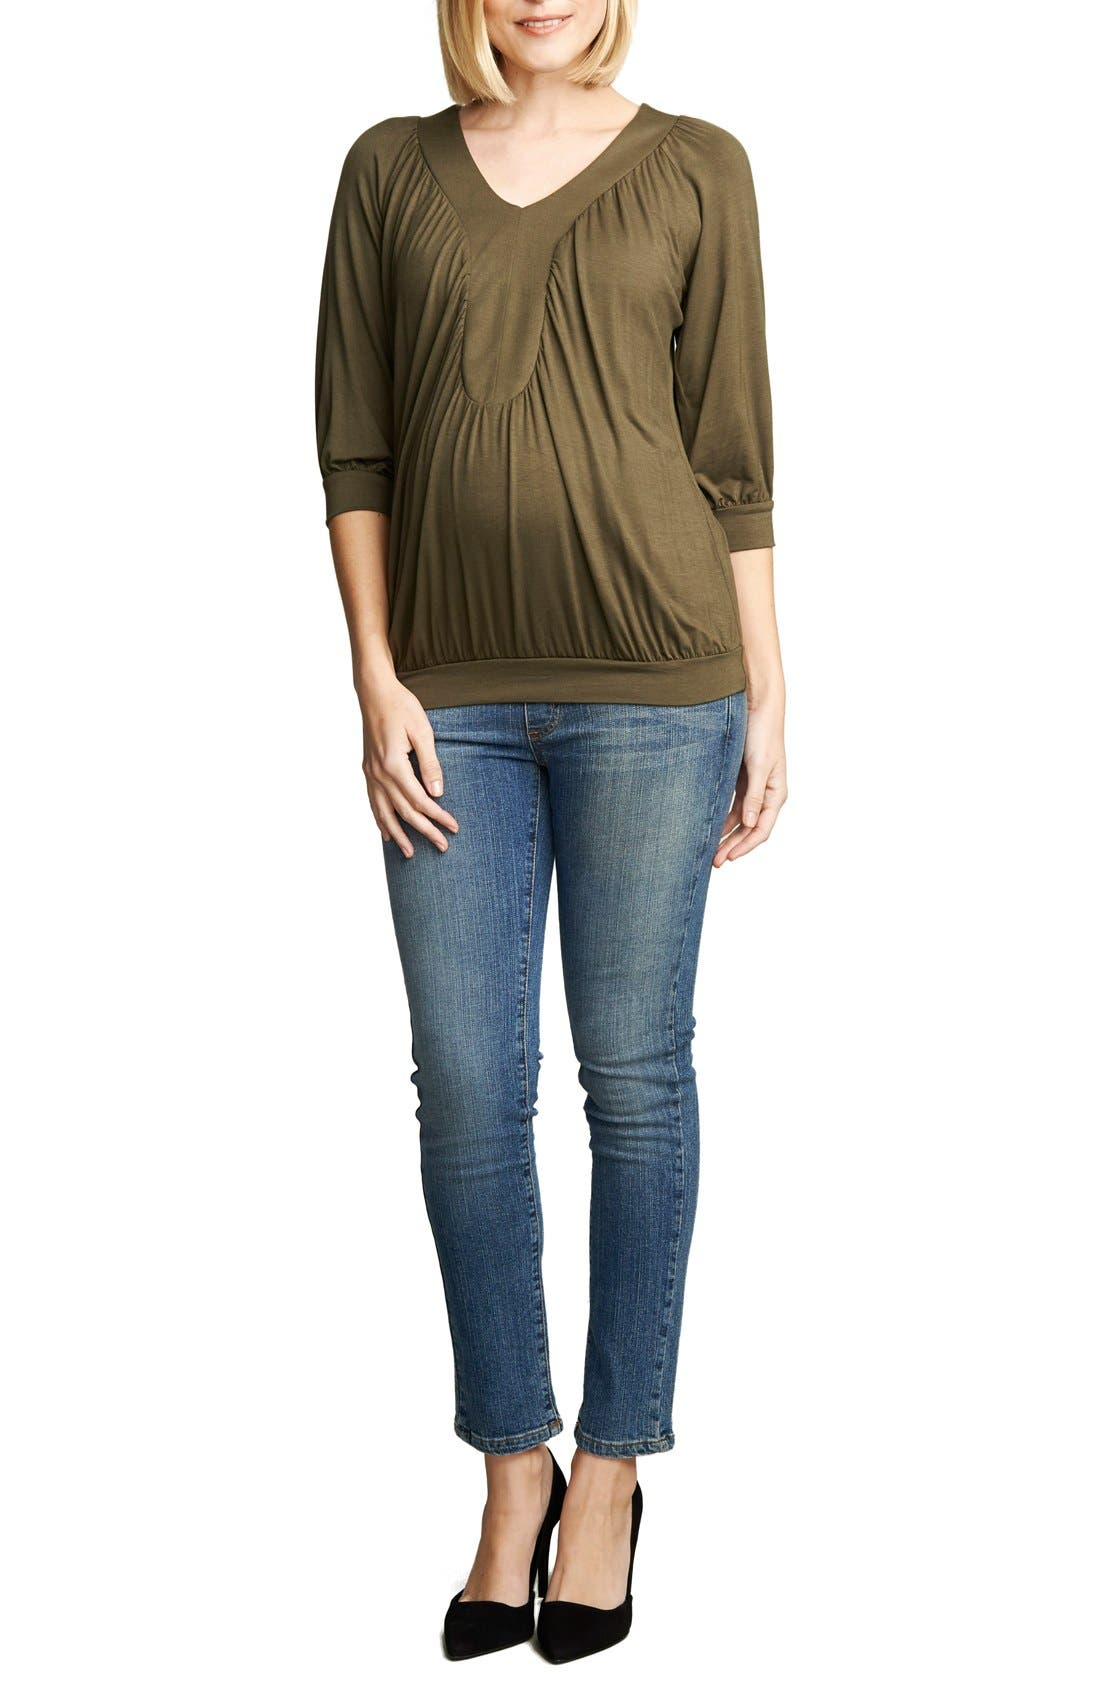 Alternate Image 1 Selected - Maternal America Ruched Dolman Top